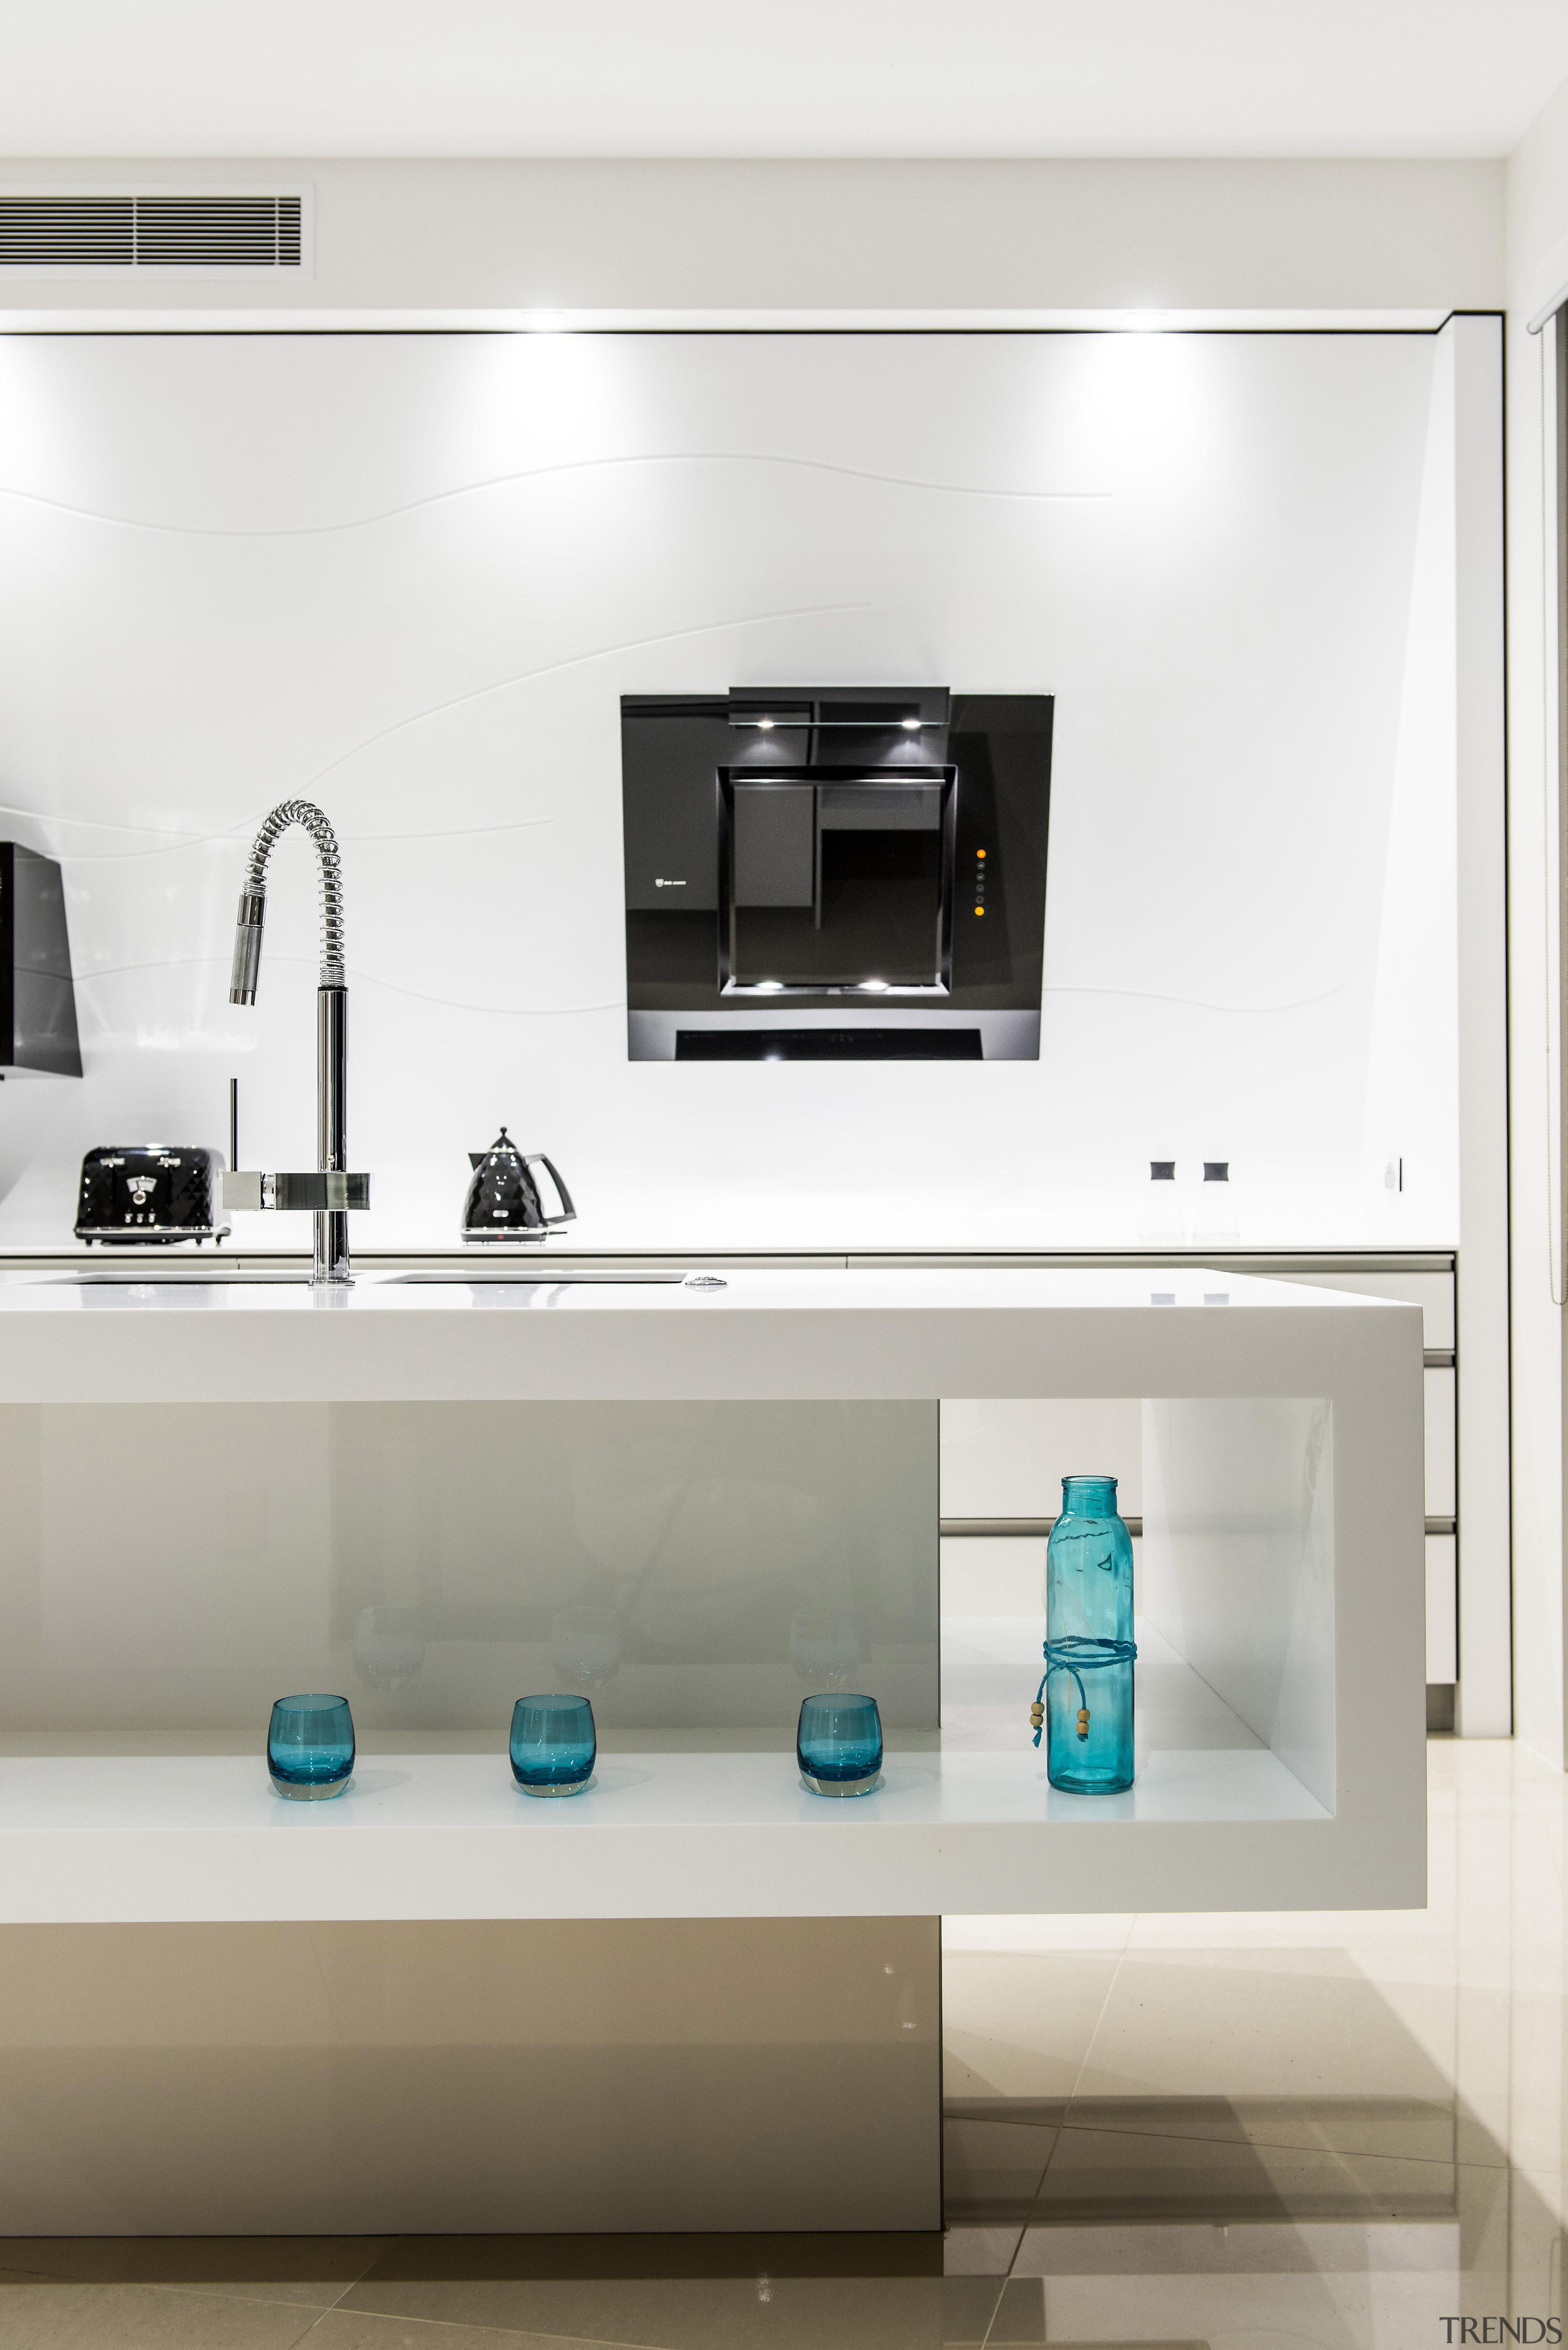 Winner Kitchen Design and Kitchen of the Year furniture, home appliance, interior design, kitchen, product, product design, tap, white